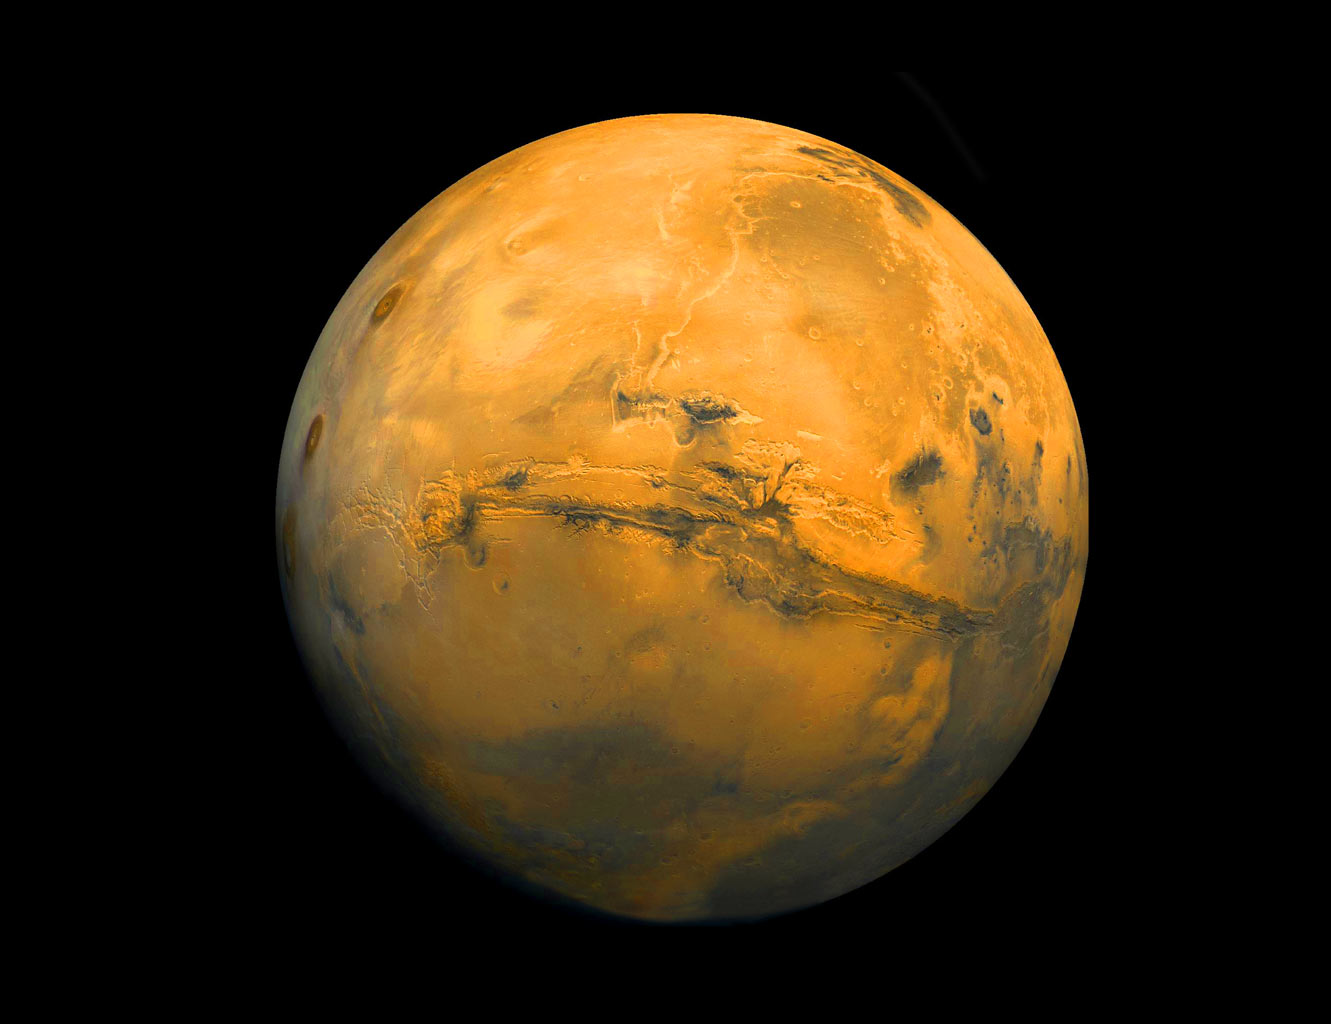 usa today on planet mars - photo #49